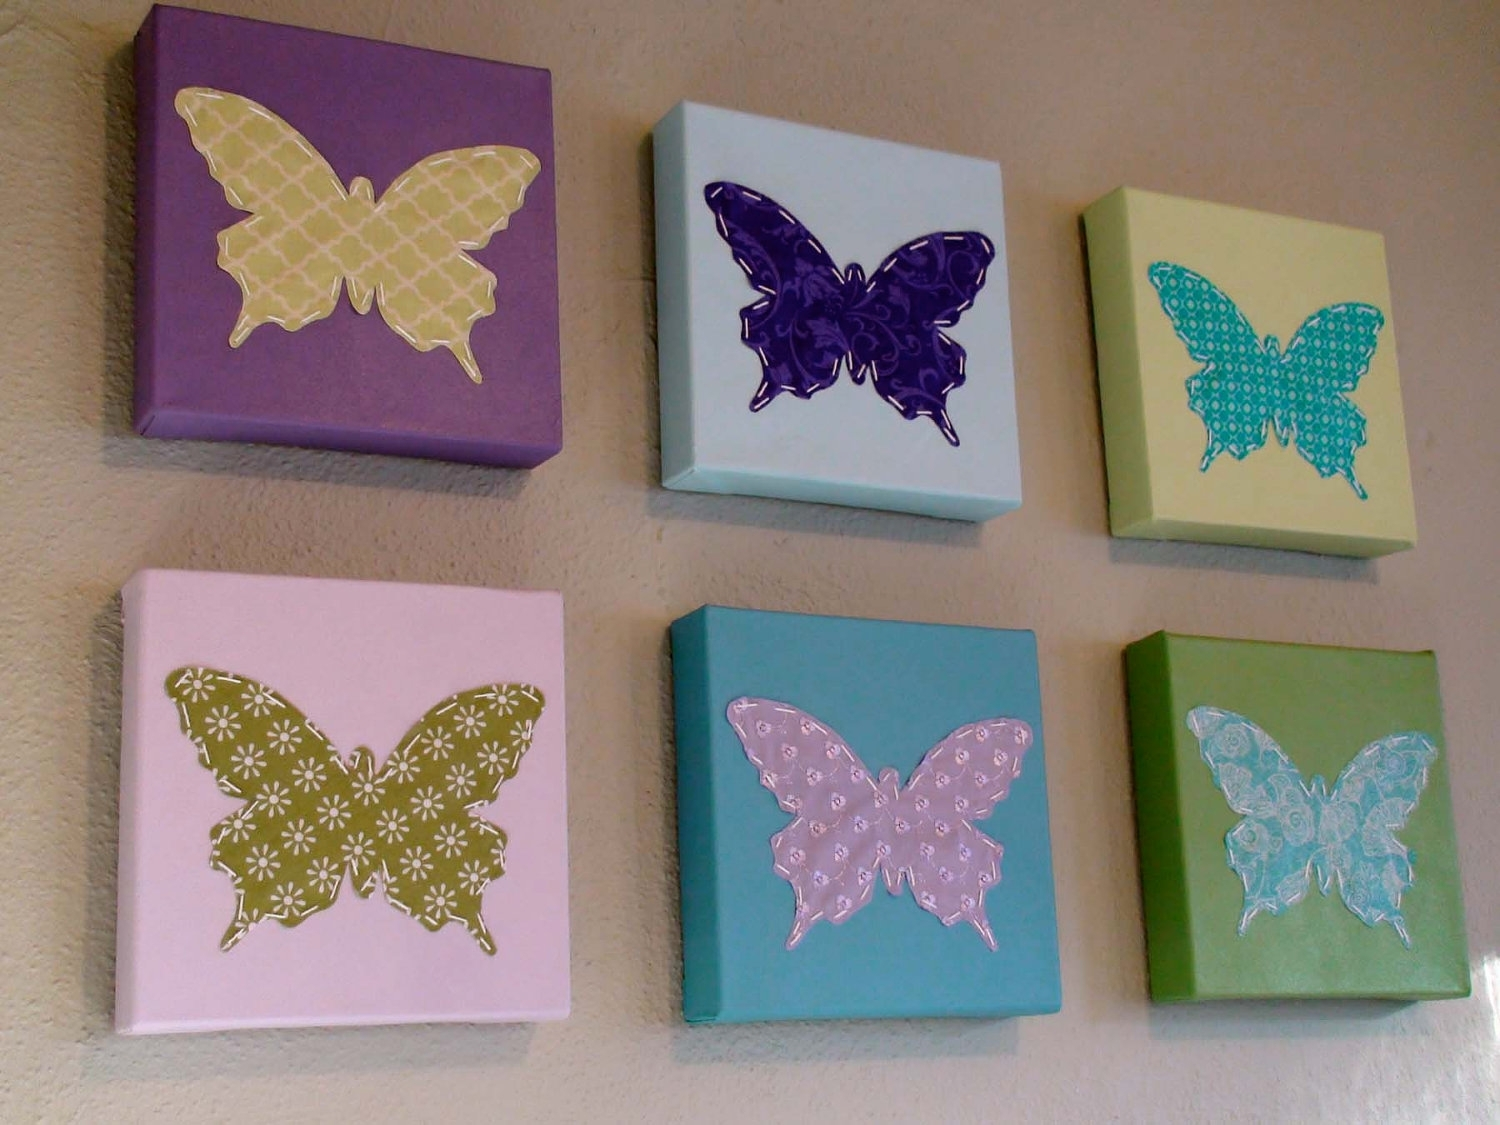 Set Butterfly Wall Art Canvas Painting Babysullysart – Dma Homes Within 2017 Butterflies Canvas Wall Art (View 13 of 15)